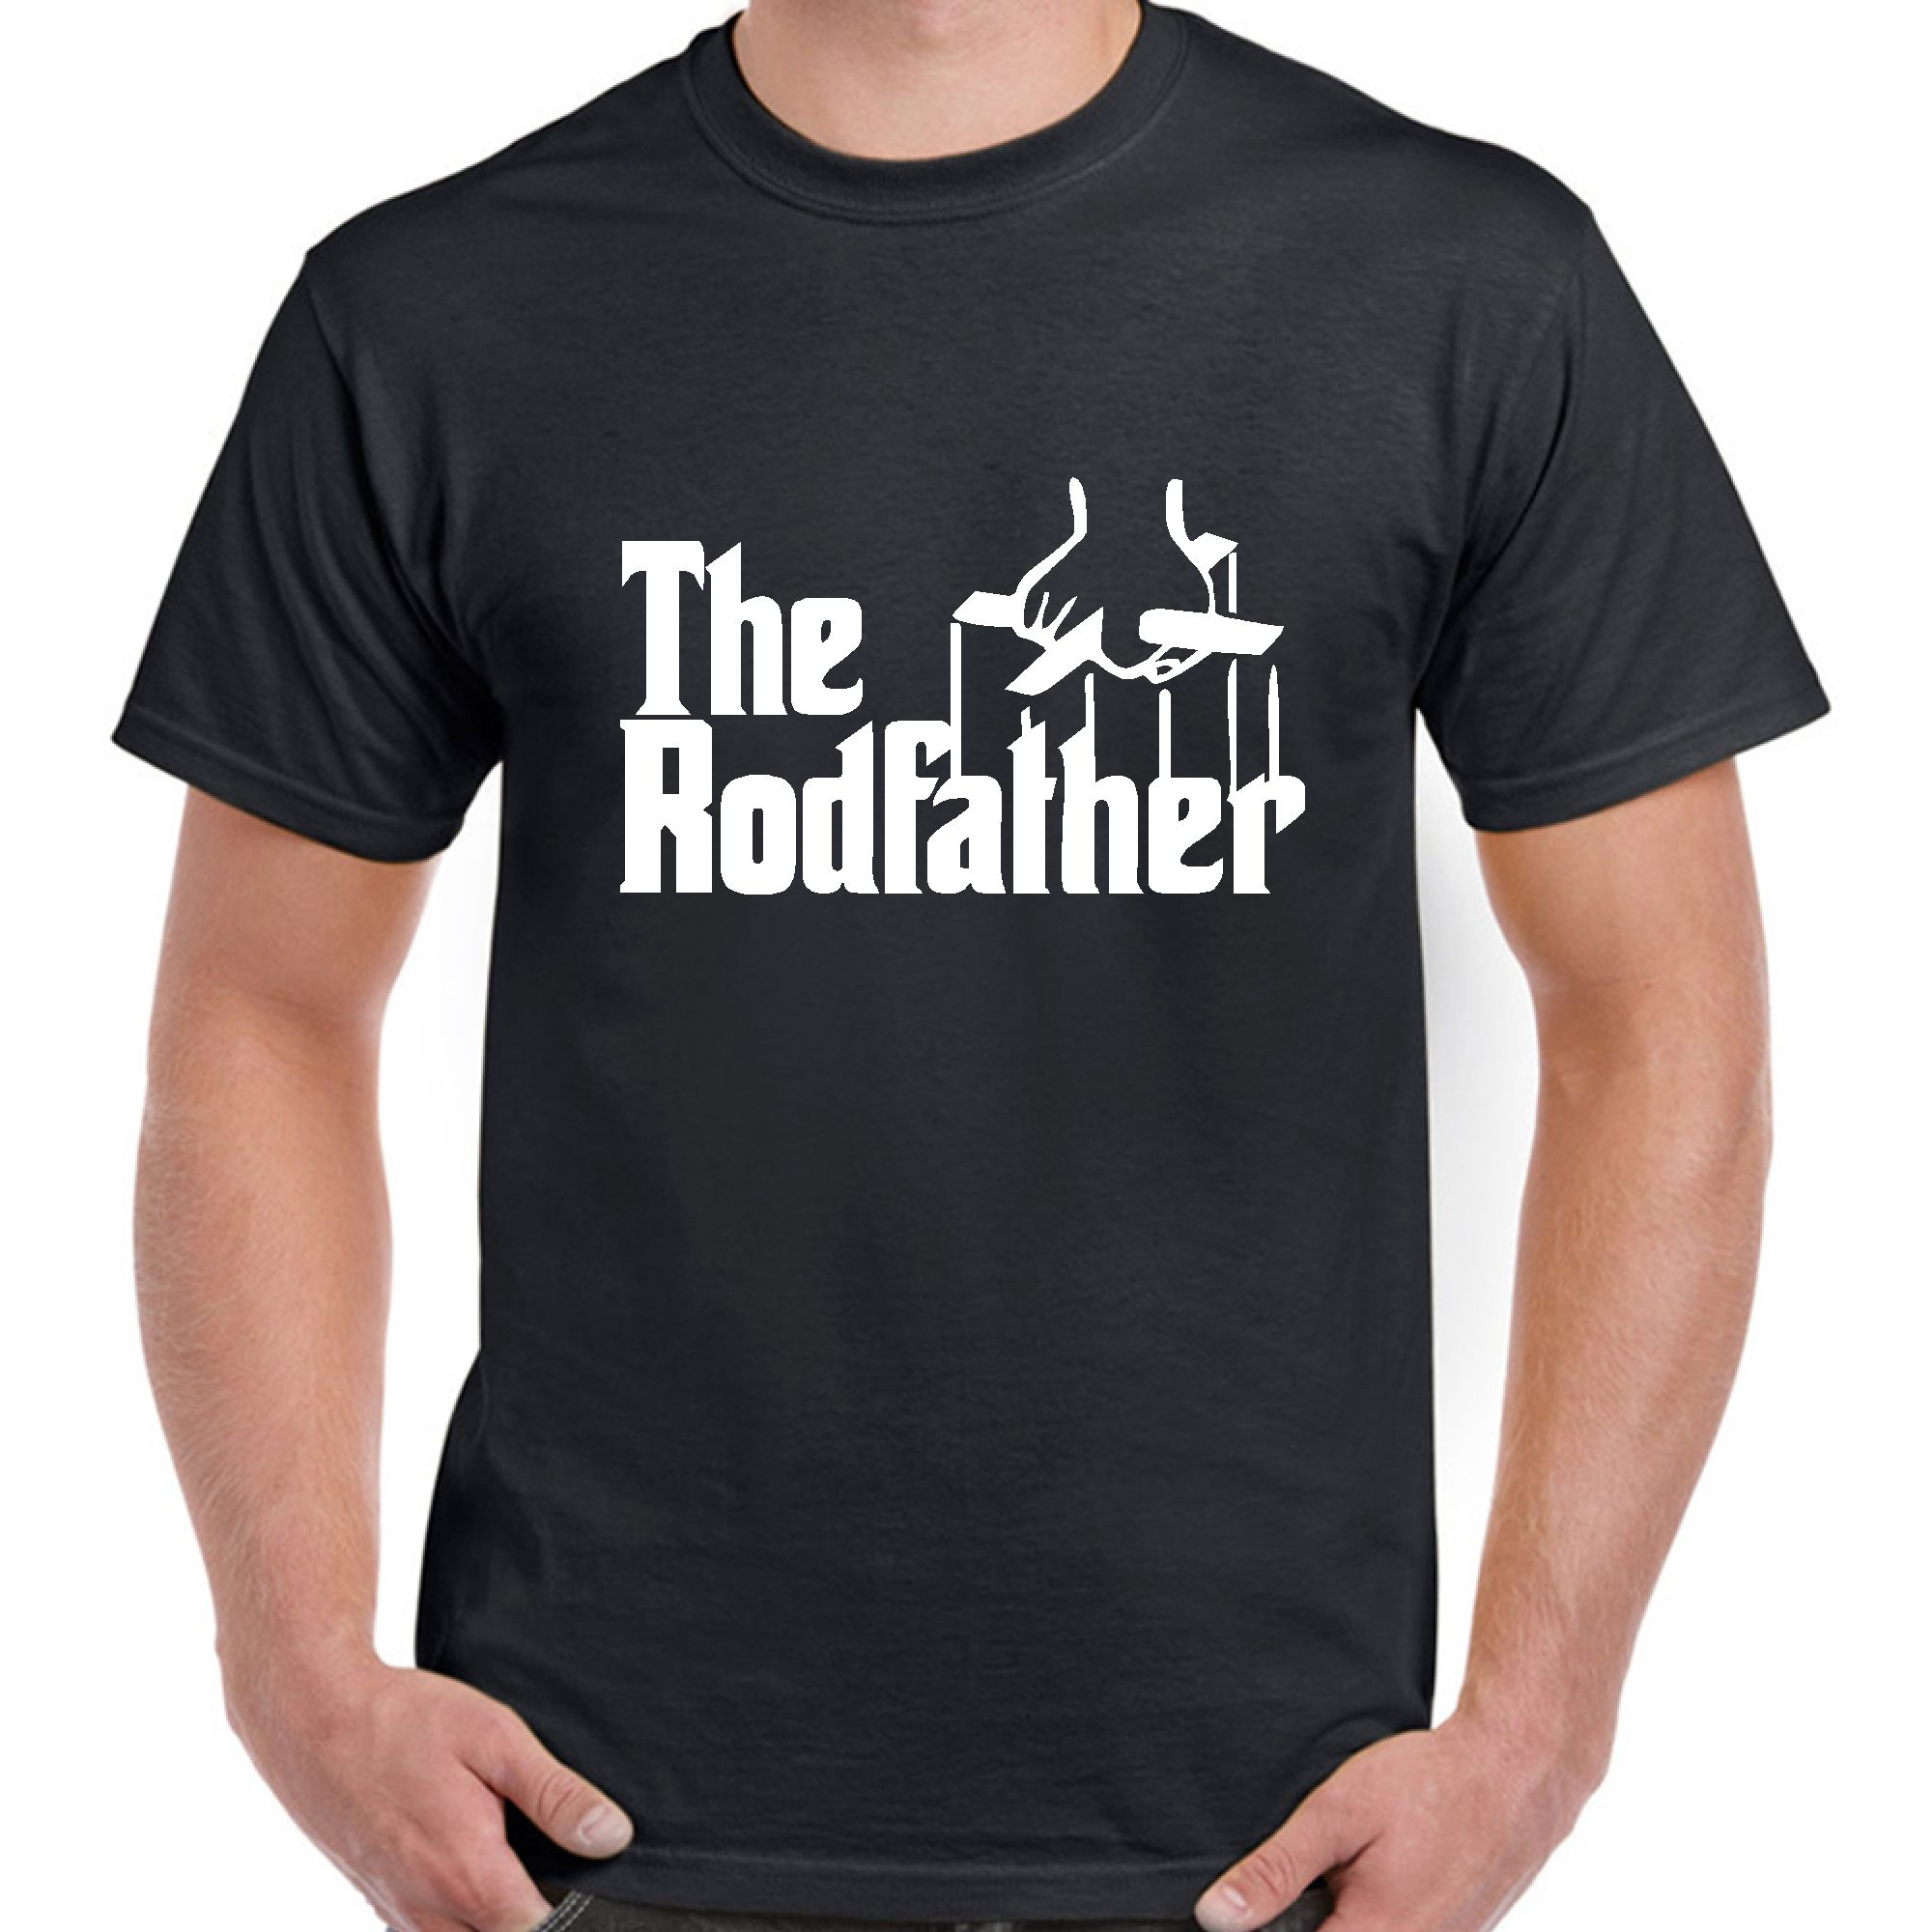 the-Rodfather-godfather-T-shirt-fishing-angling-angler-fishing-rod-funny-parody